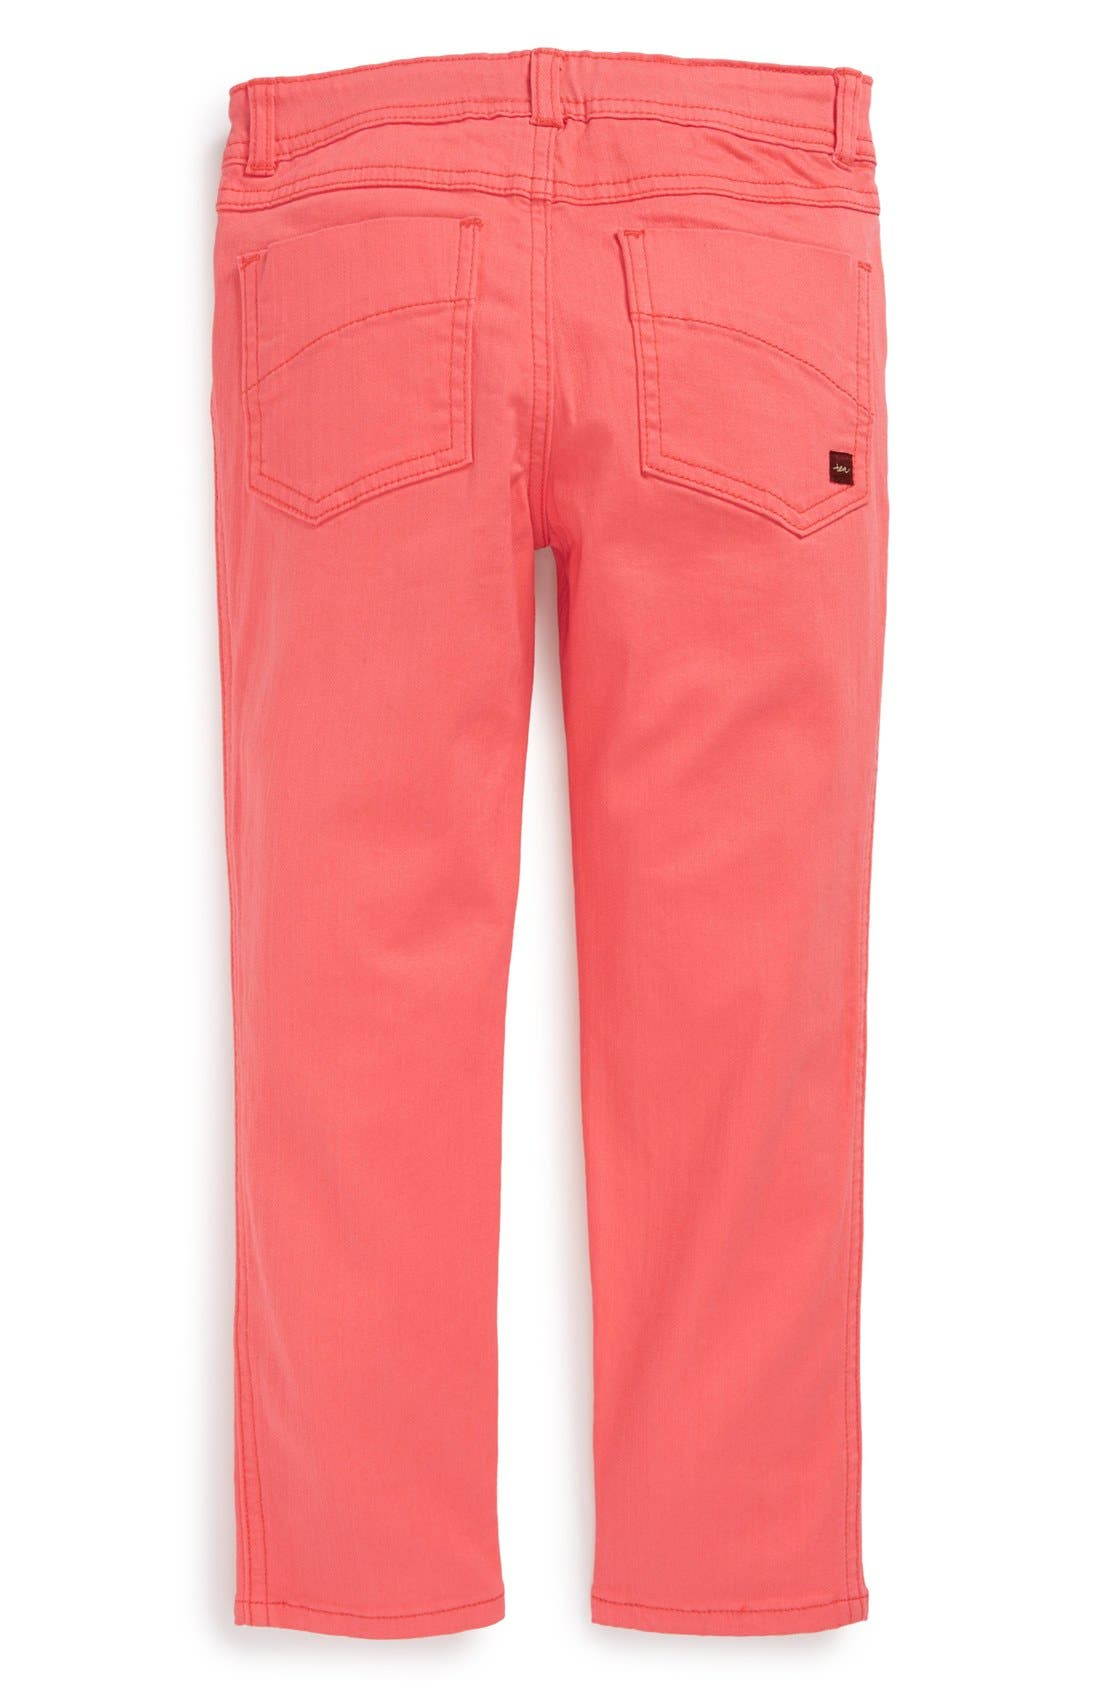 Main Image - Tea Collection Skinny Ankle Pants (Little Girls & Big Girls)